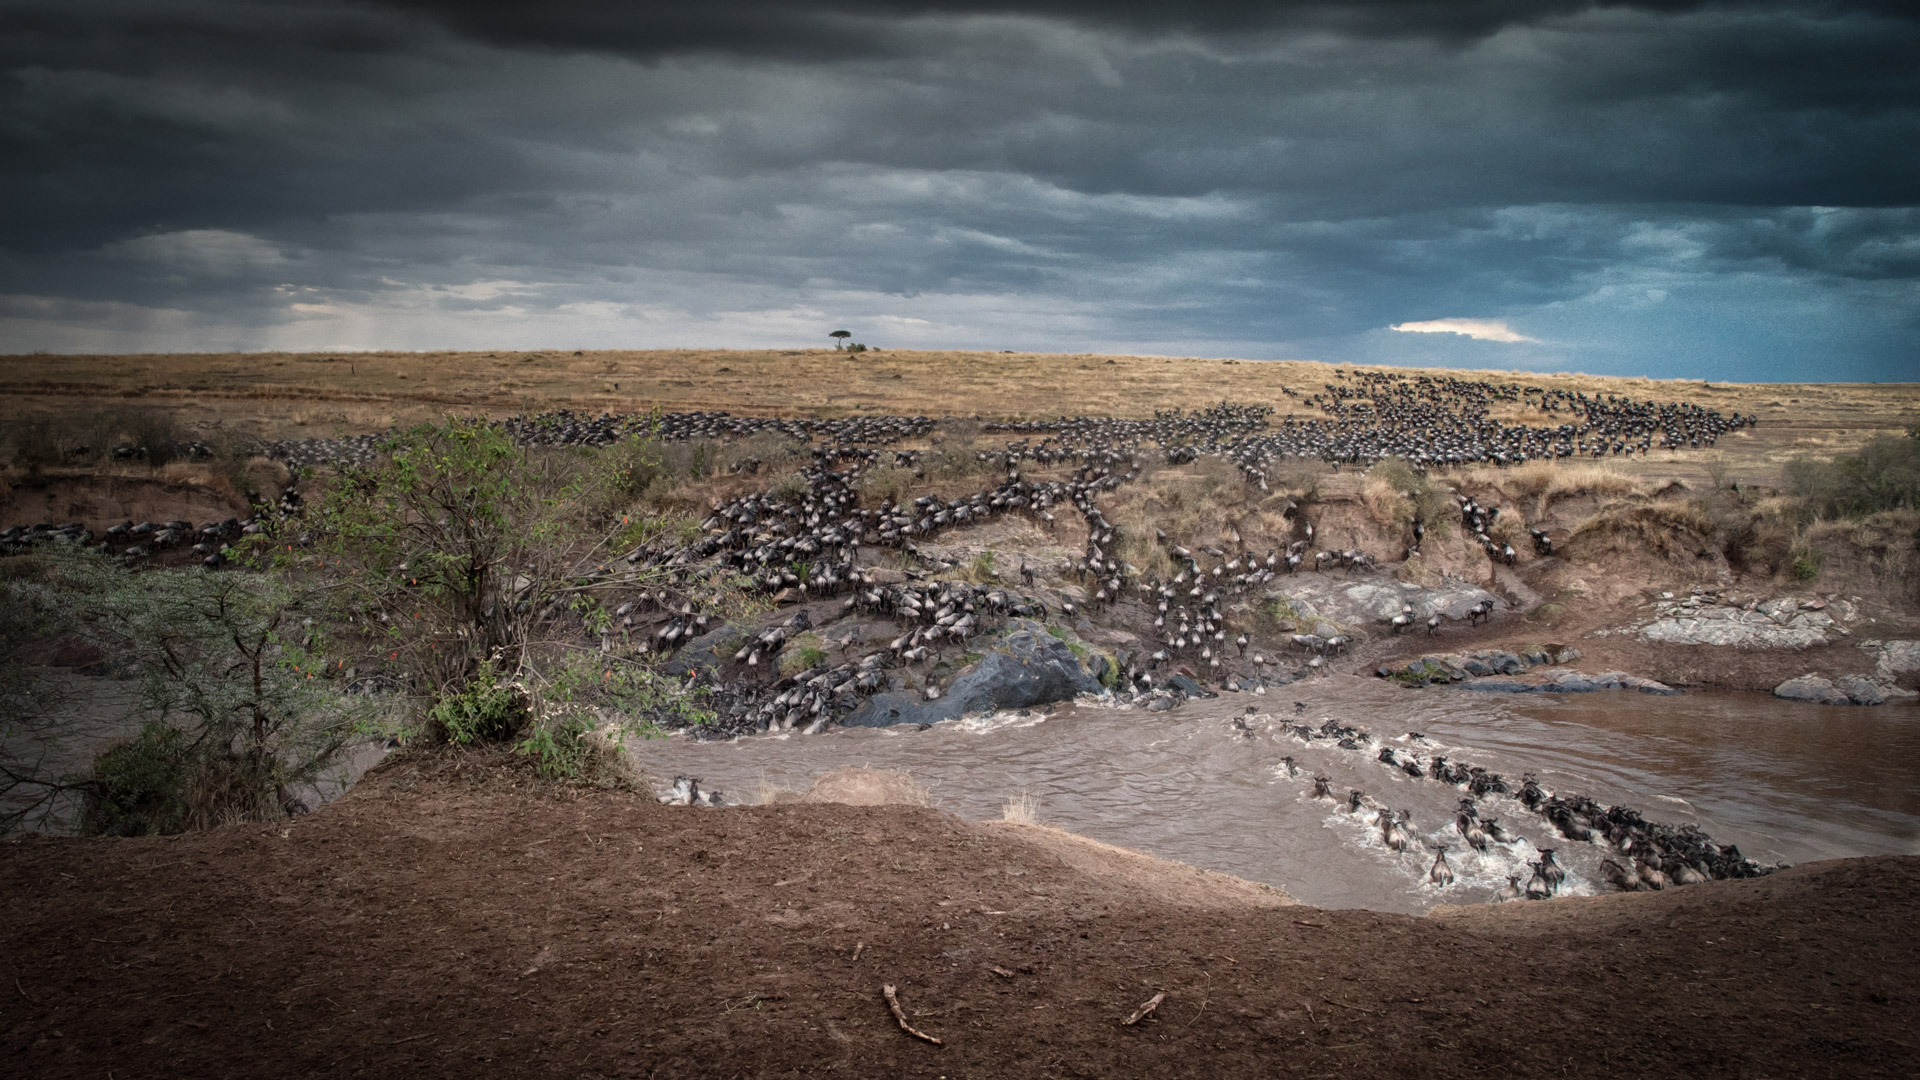 Wildebeest migration crossing river in Maasai Mara, Kenya